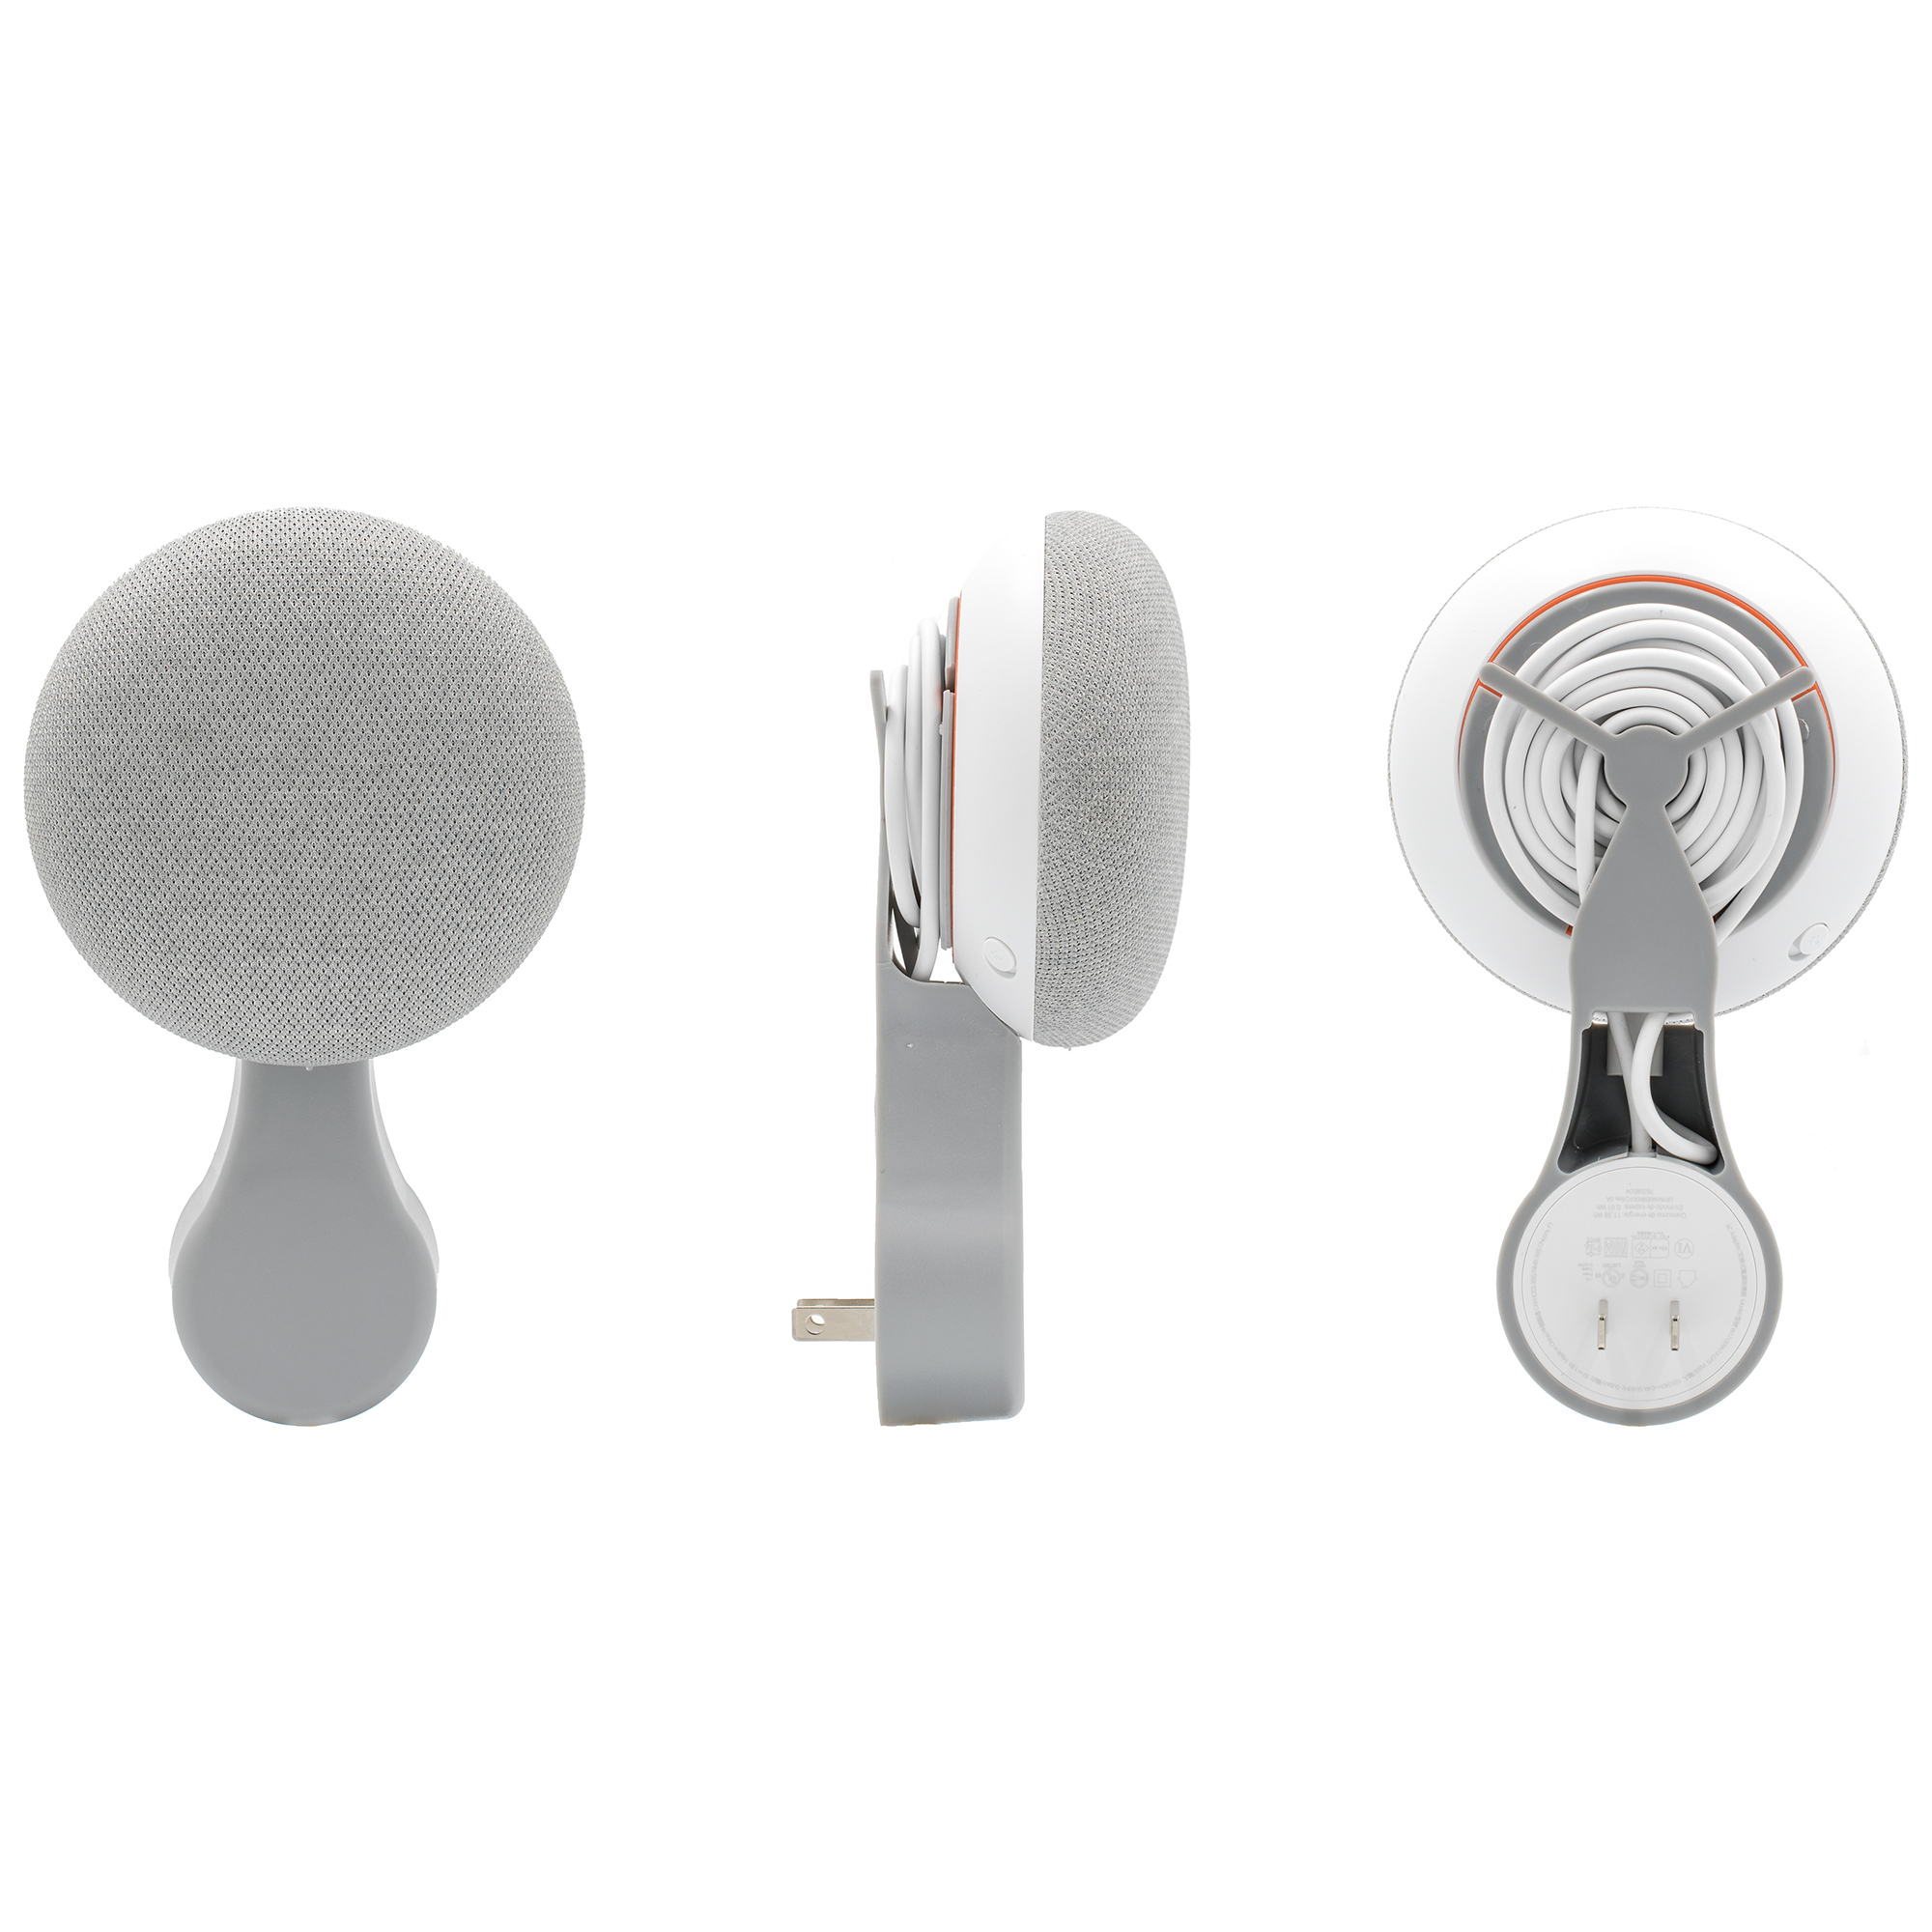 Hidden Power Cord Streamlined Plug-in Stand for Google Home Mini(White) Ti-Baismt Wall Mount for Google Home Mini Round Speakers